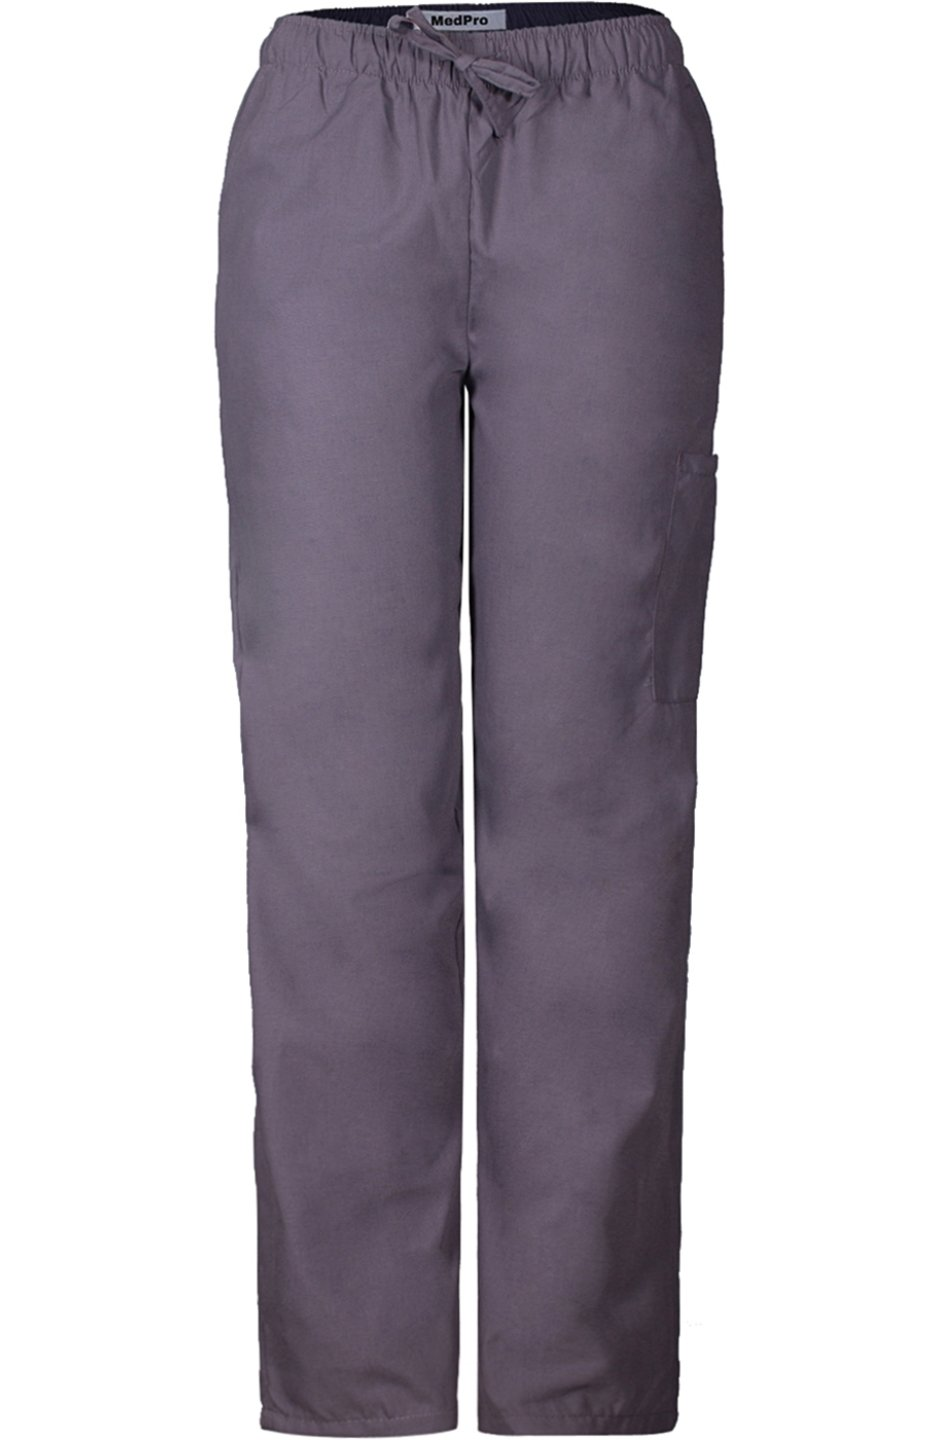 MedPro Women's Medical Scrub Set with Printed Wrap Top and Cargo Pants Purple Grey XL by MedPro (Image #4)